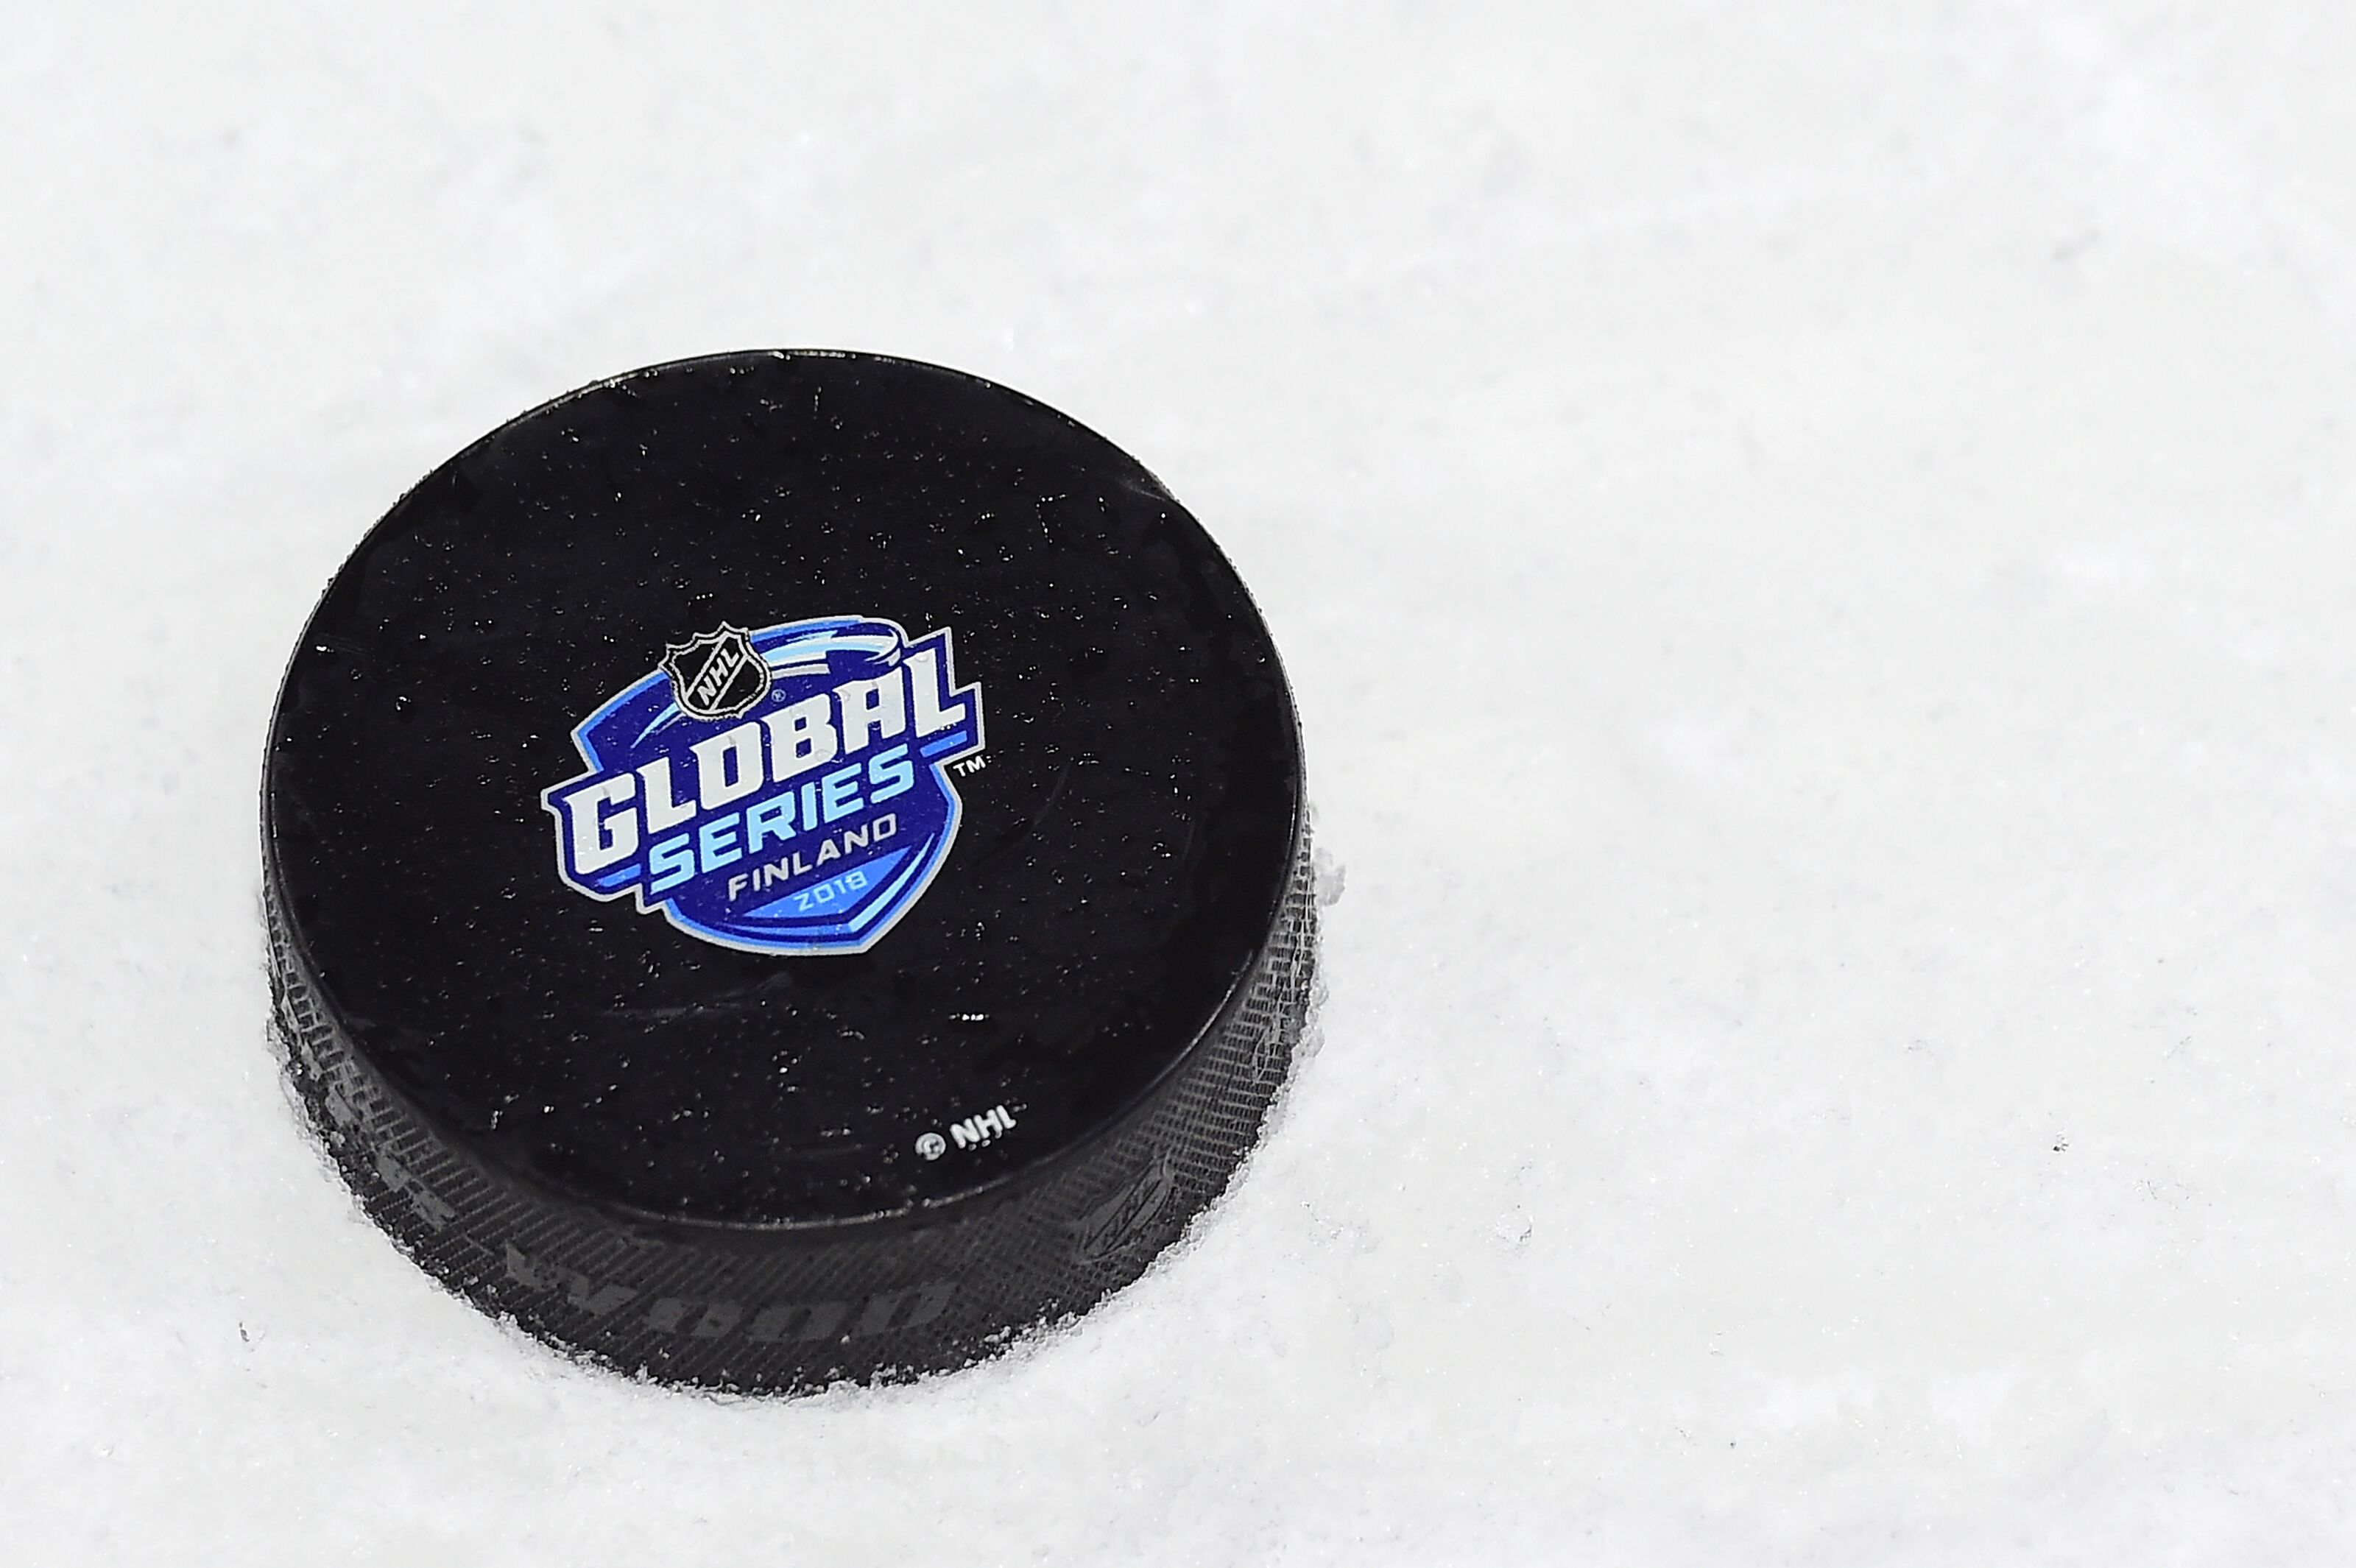 Carolina Hurricanes: A Case for a Global Series in Finland